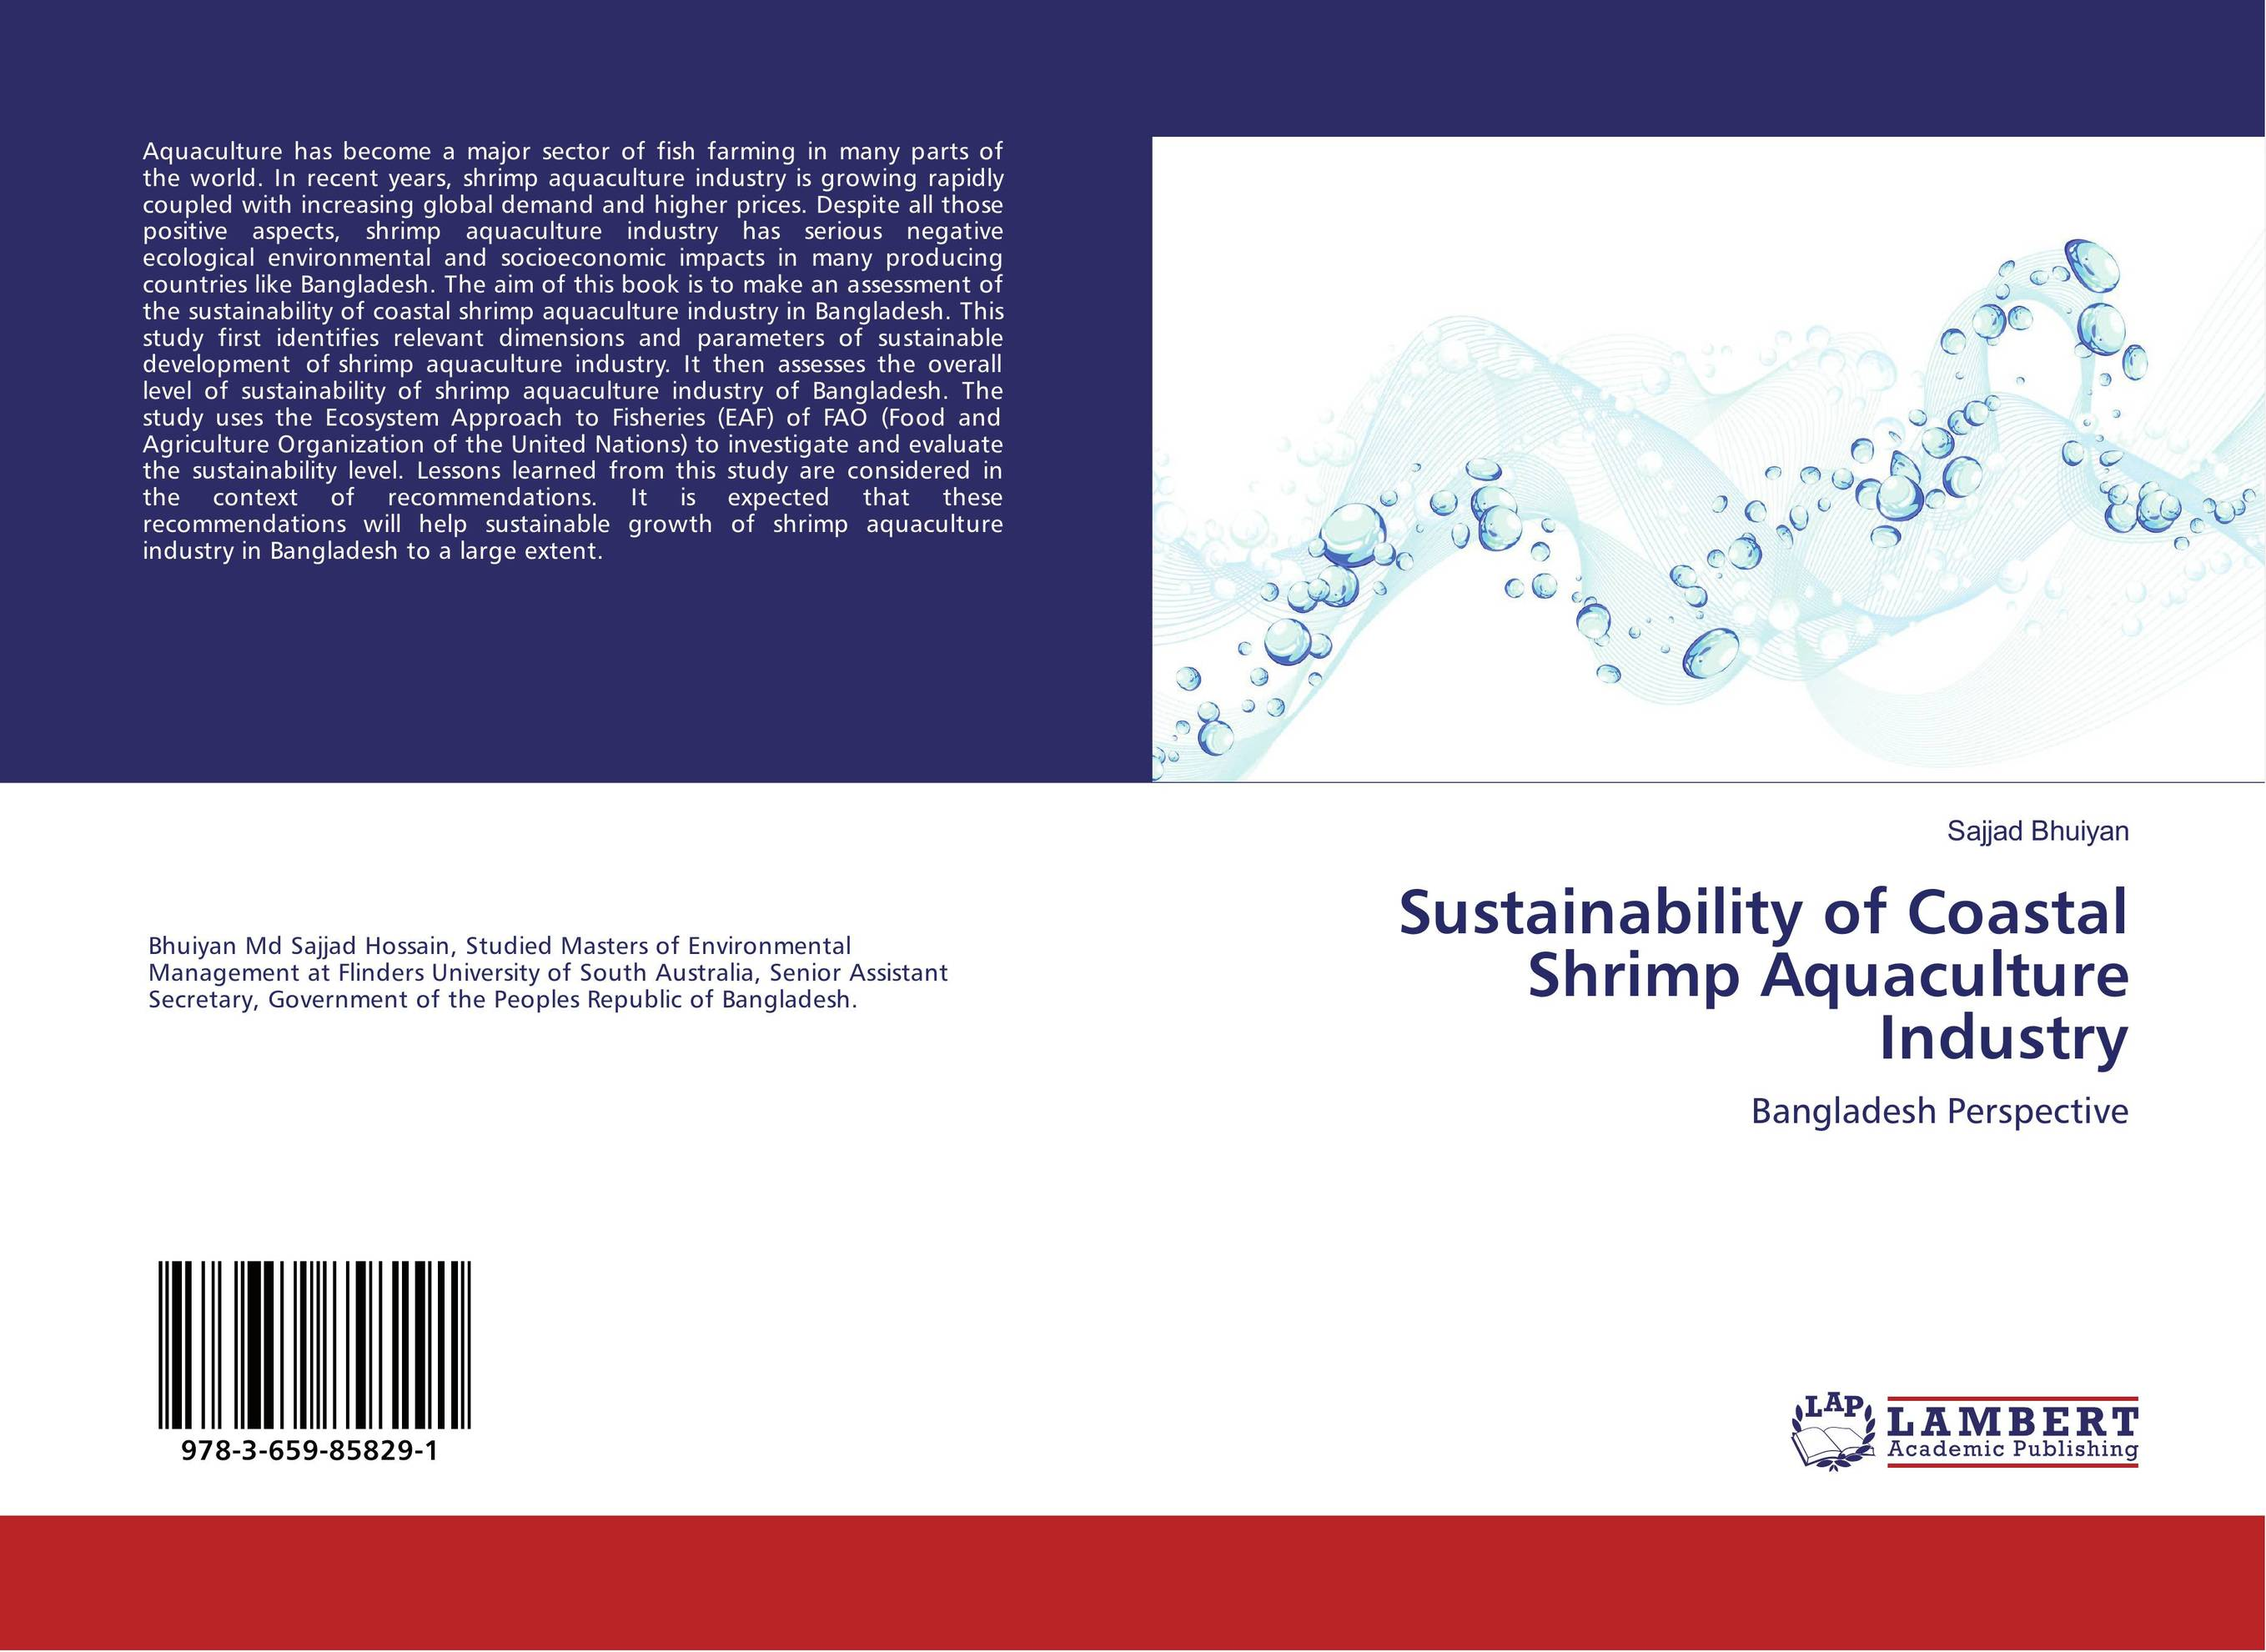 Sustainability of Coastal Shrimp Aquaculture Industry alternative herbal medicines for shrimp aquaculture